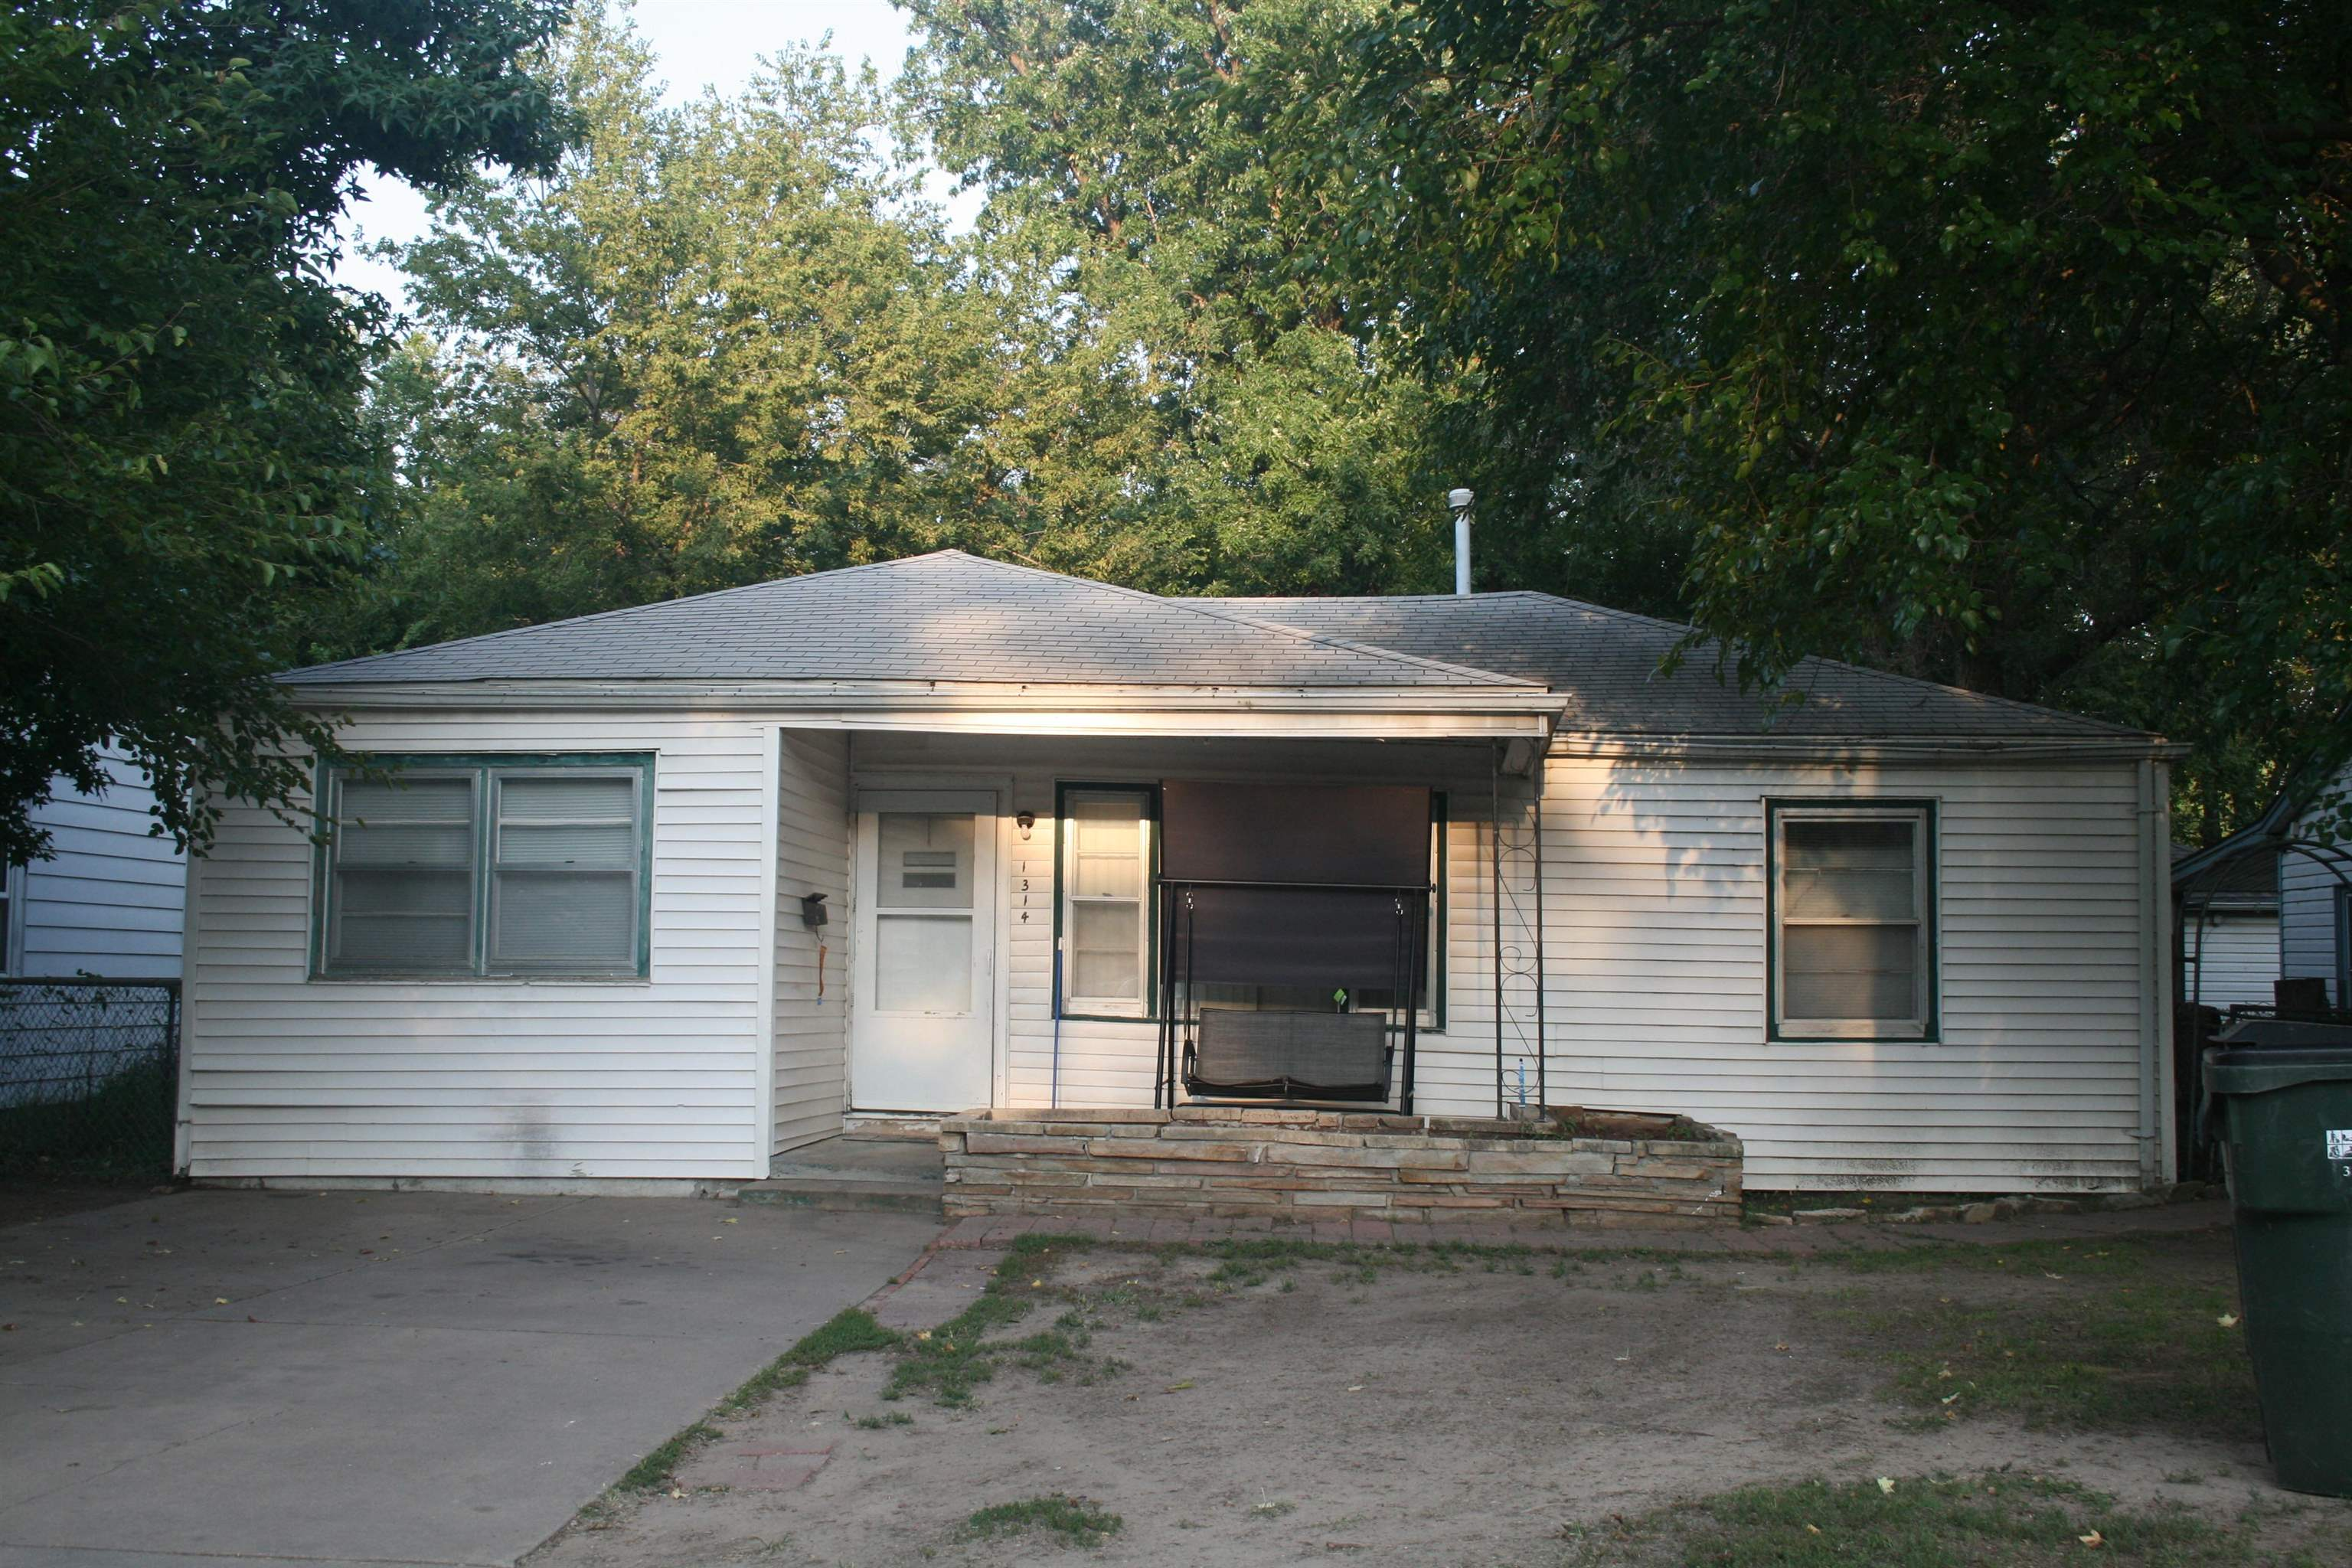 A nice spacious home, nice dining and an extra room for whatever your needs are.